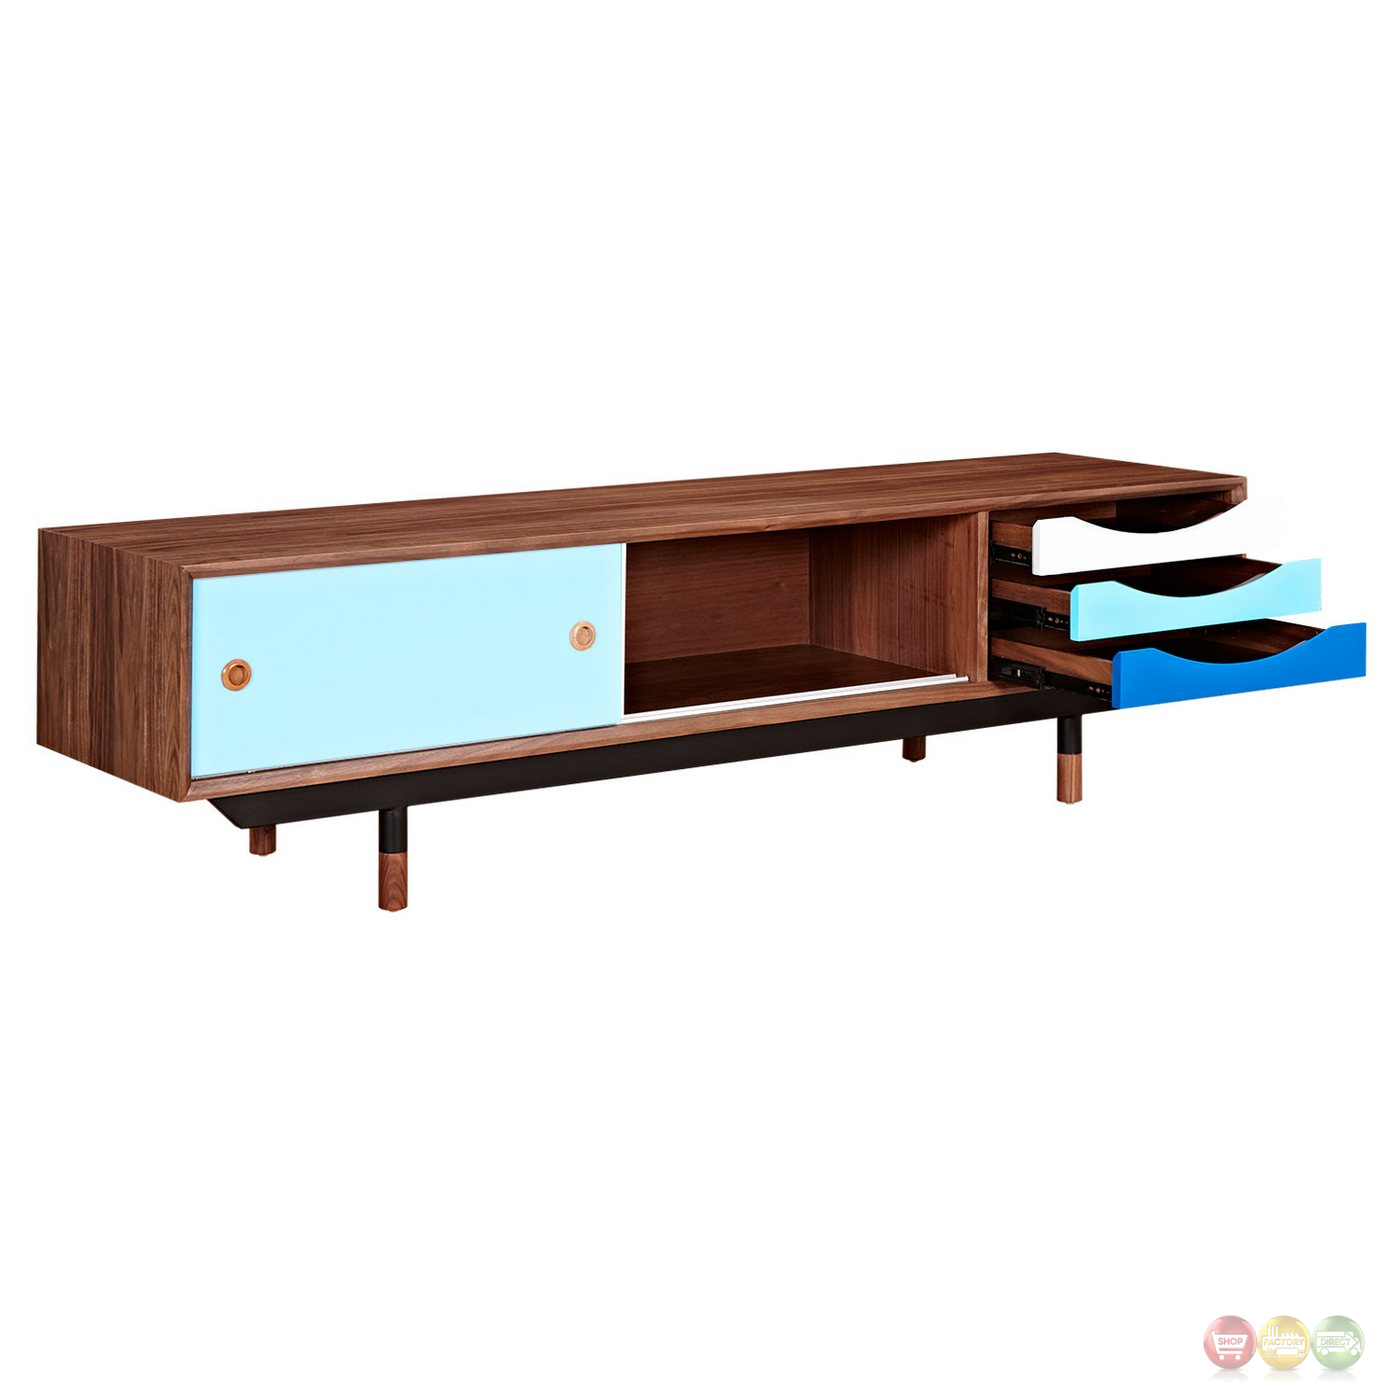 soren walnut wood tv stand with storage in blue white finish. Black Bedroom Furniture Sets. Home Design Ideas